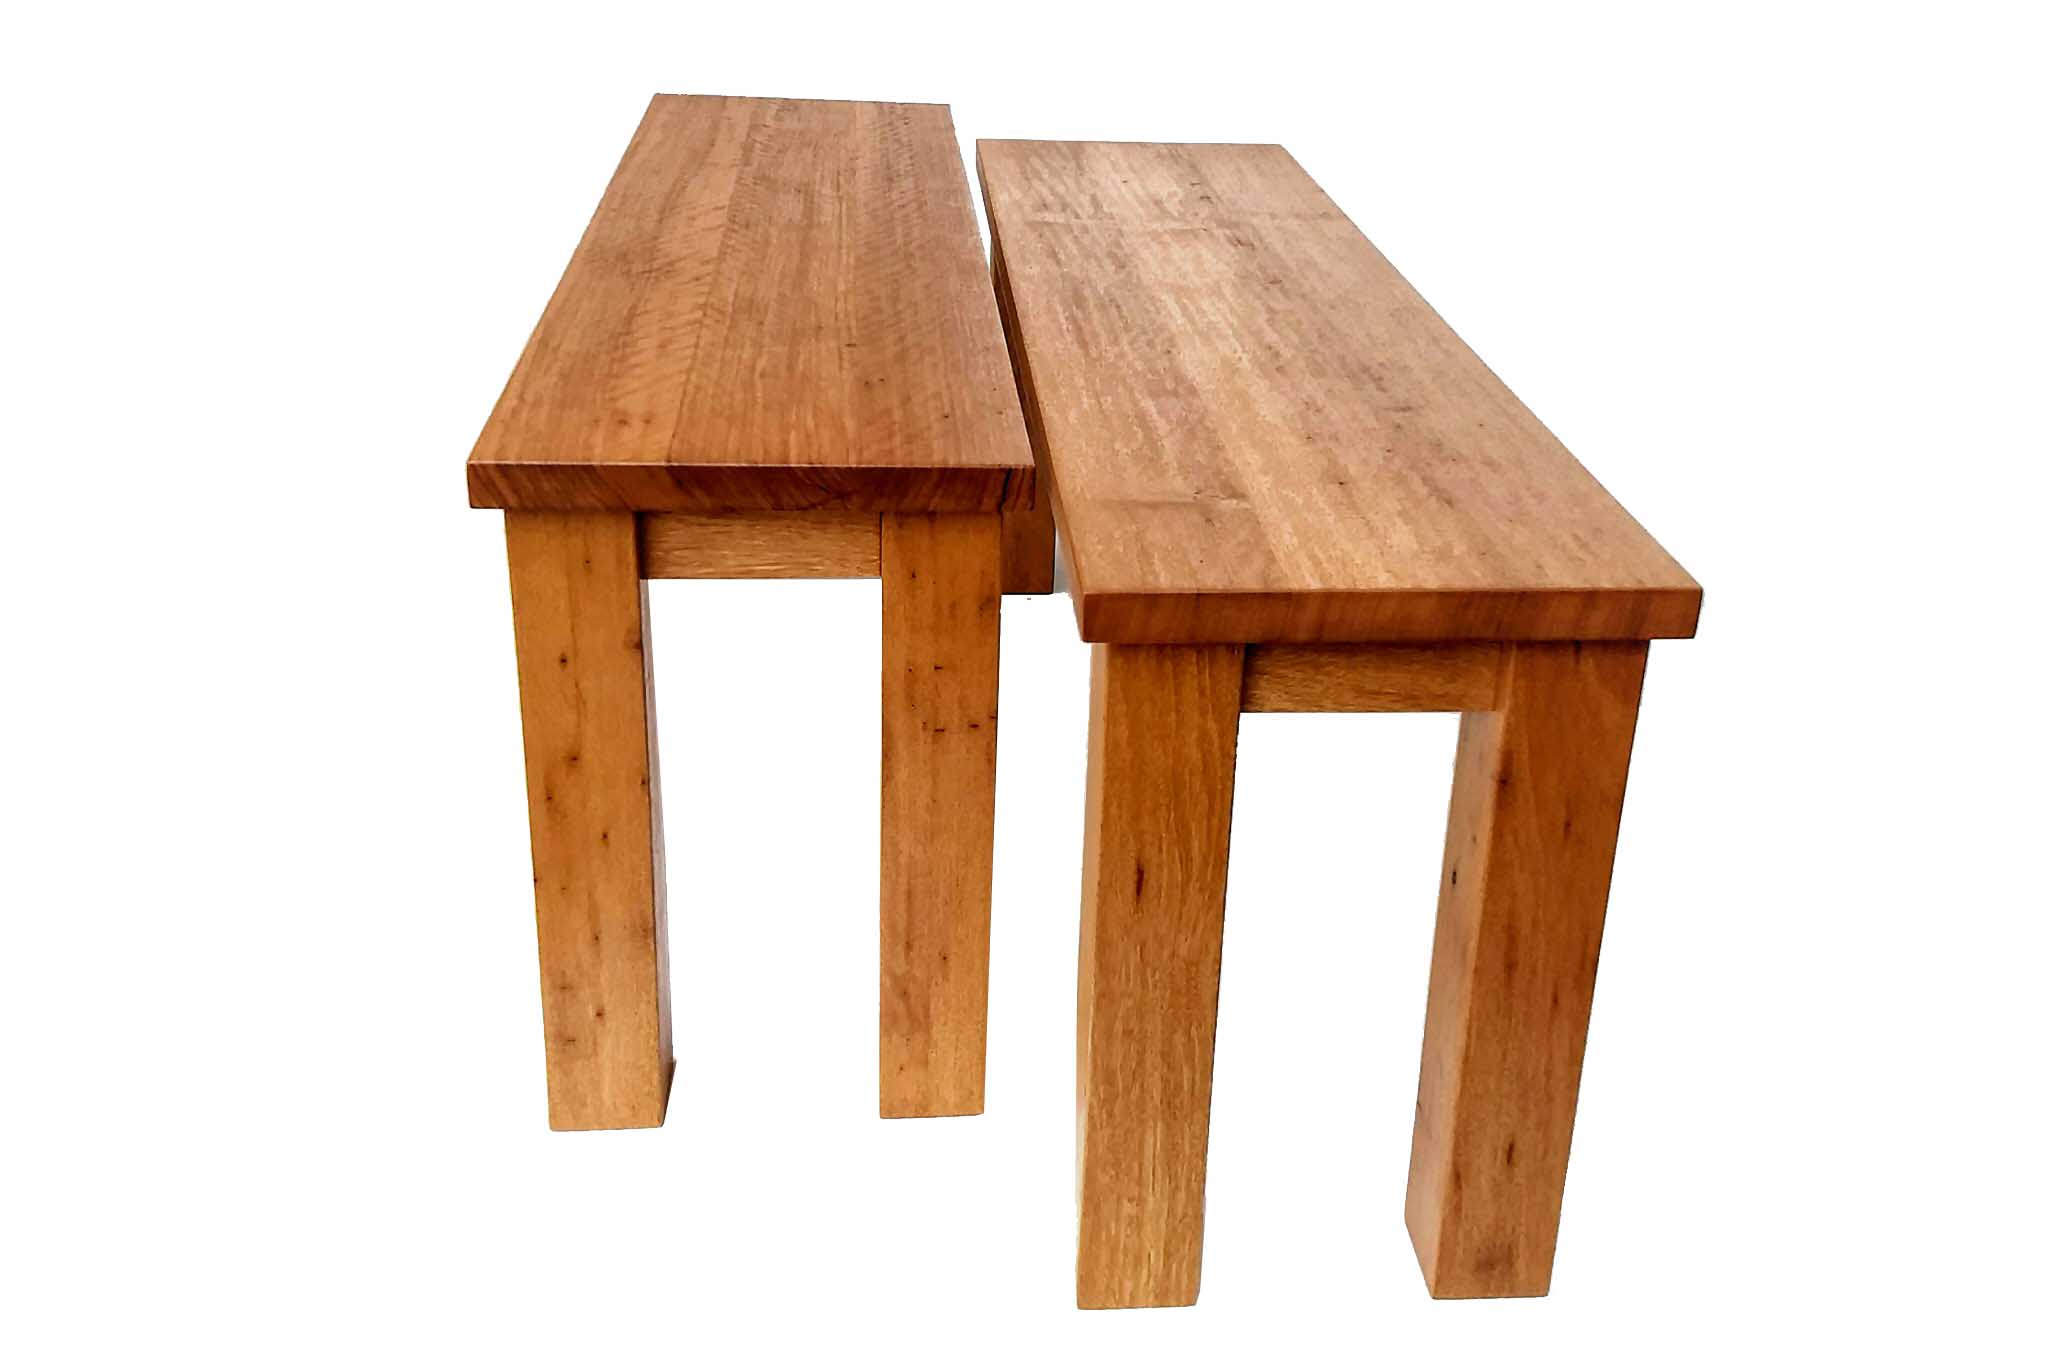 Recycled Timber Bench Seats made from reclaimed Australian hardwood.